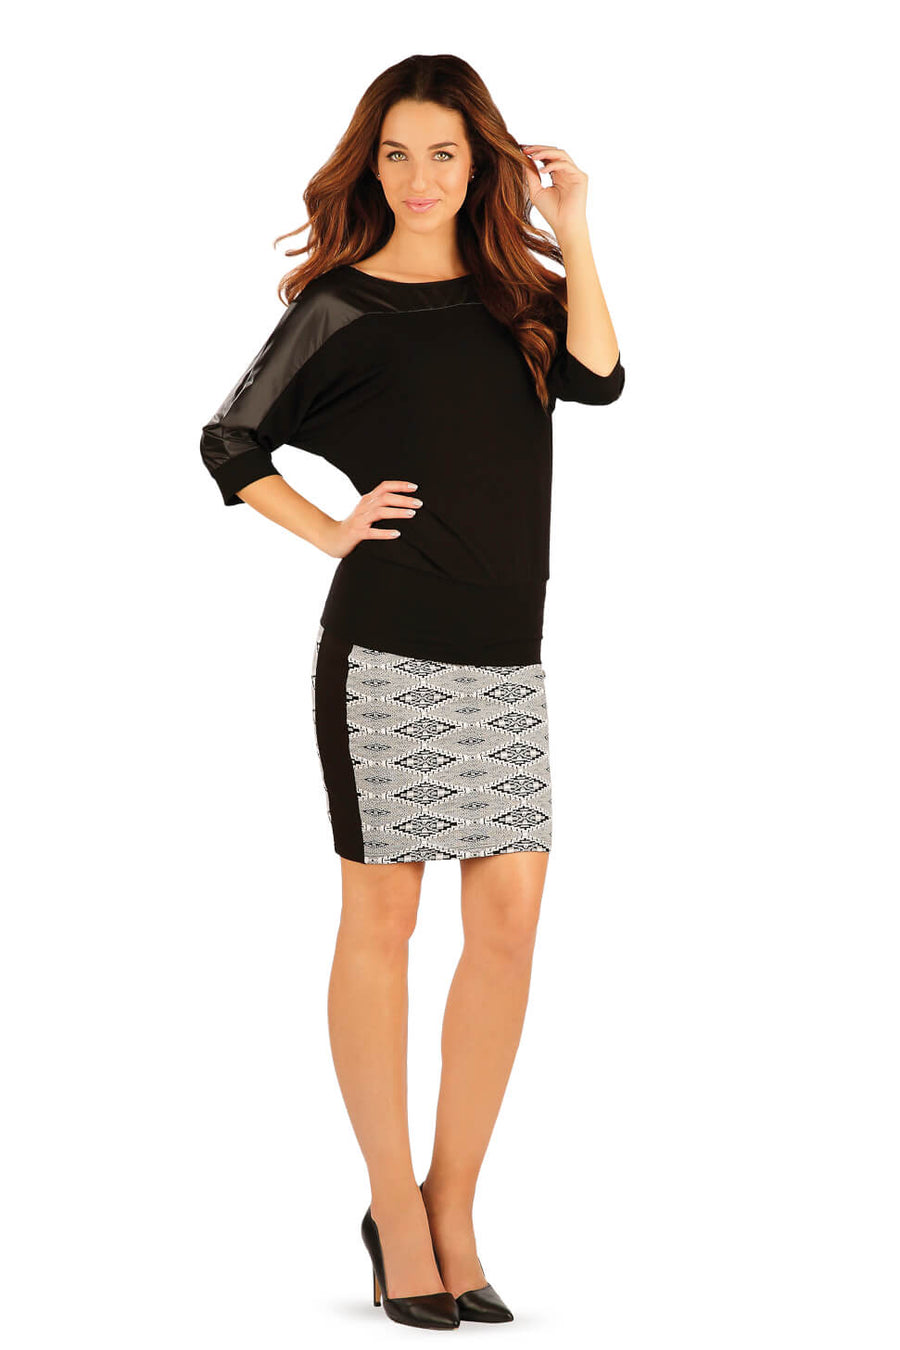 Women's Patterned Skirt